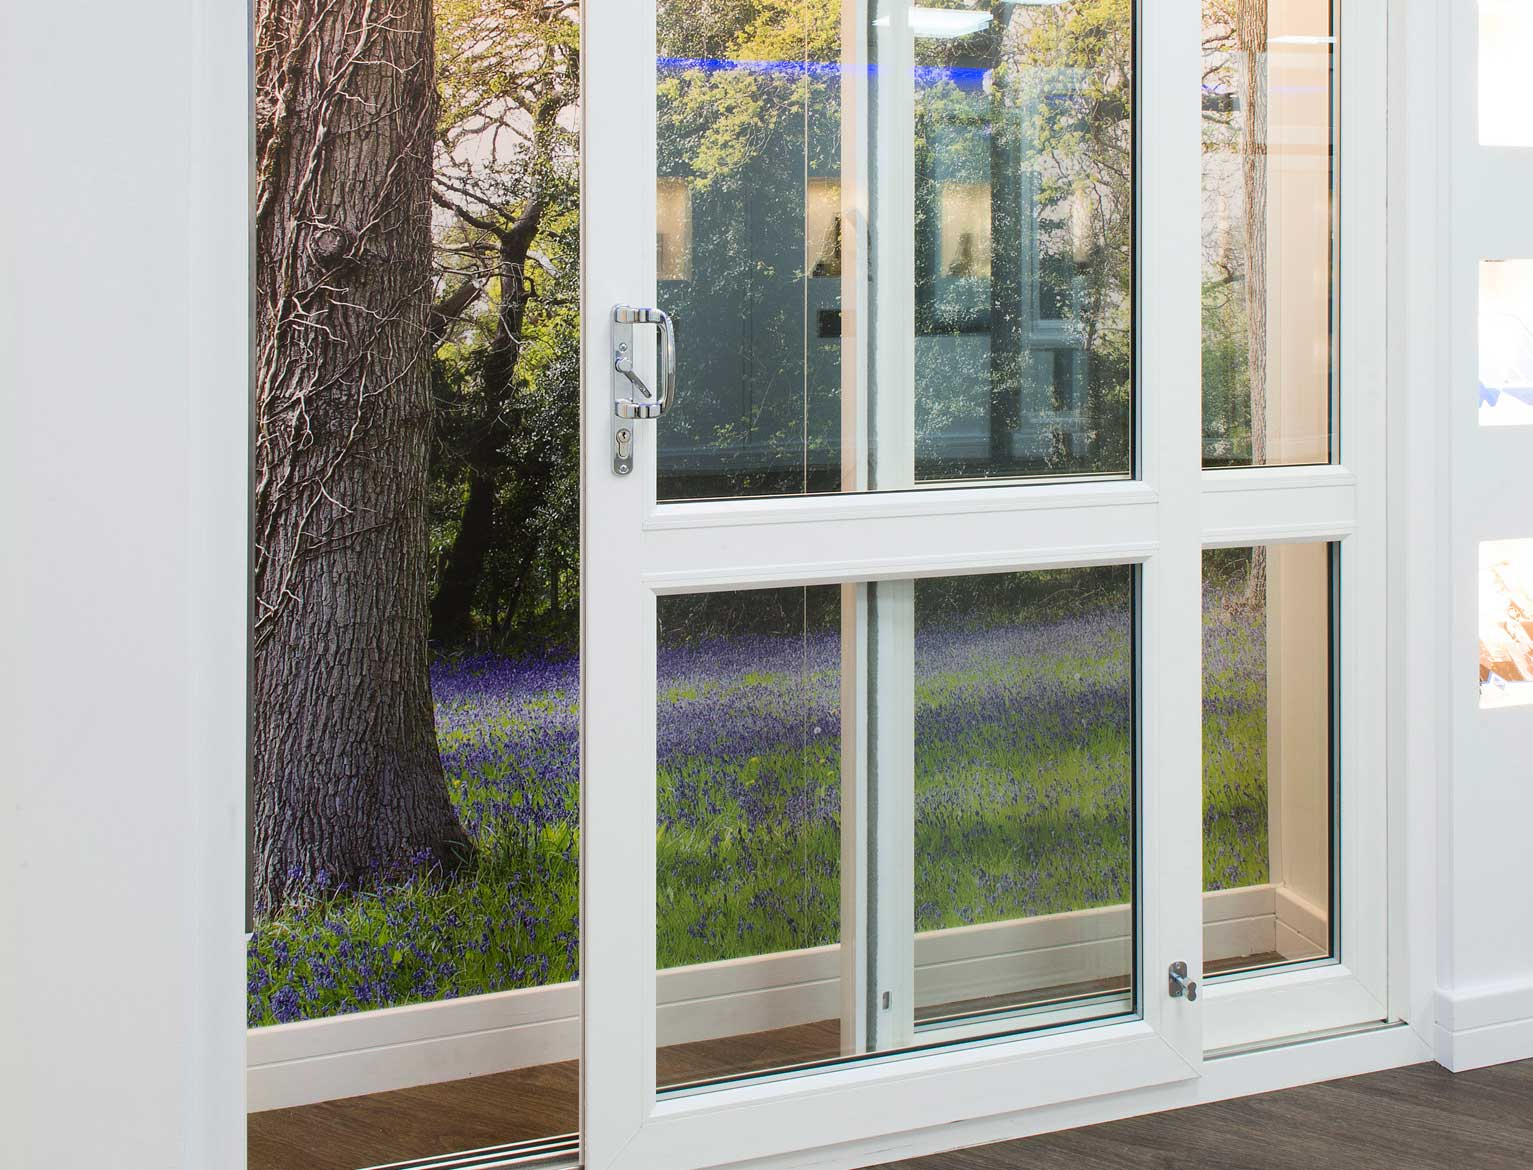 Upvc Patio Doors Kent Upvc Patio Doors Prices Sevenoaks